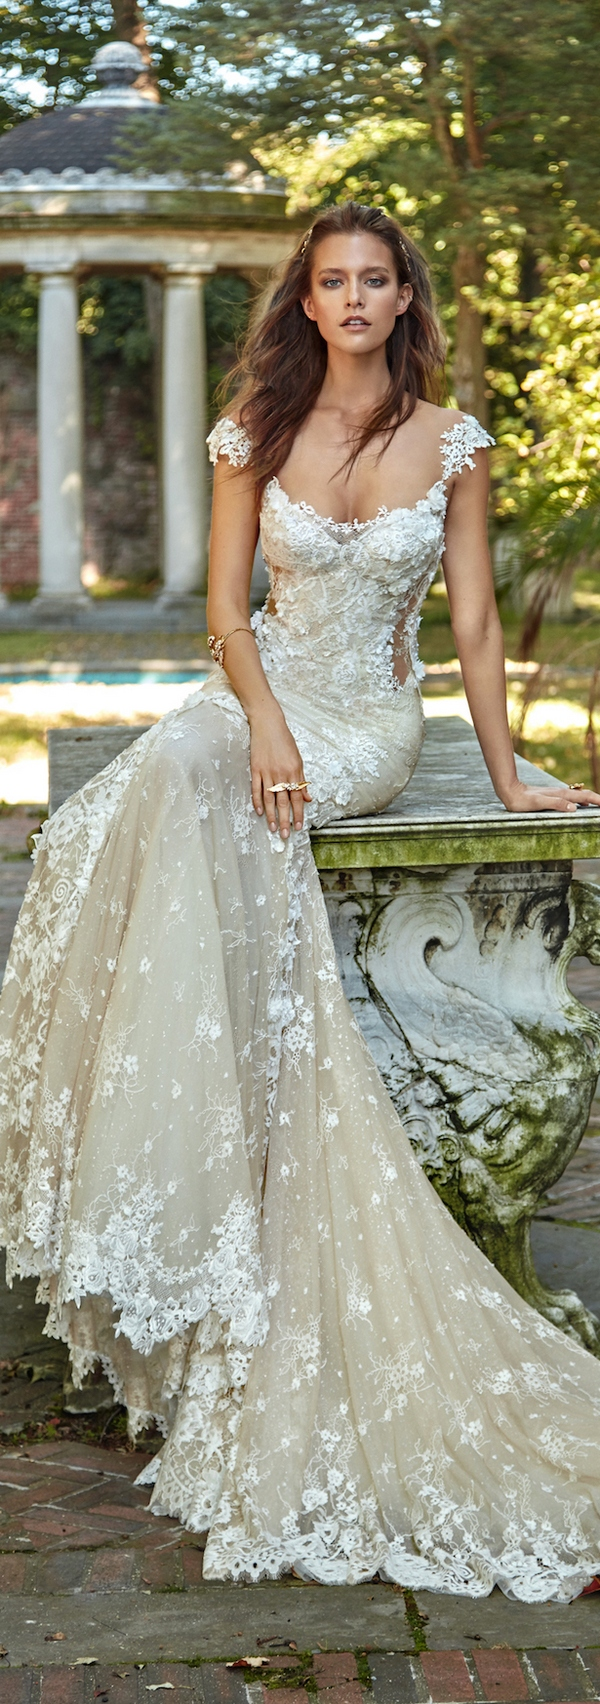 thin strap lace applique wedding dress with cutouts and a flattering scoop neckline